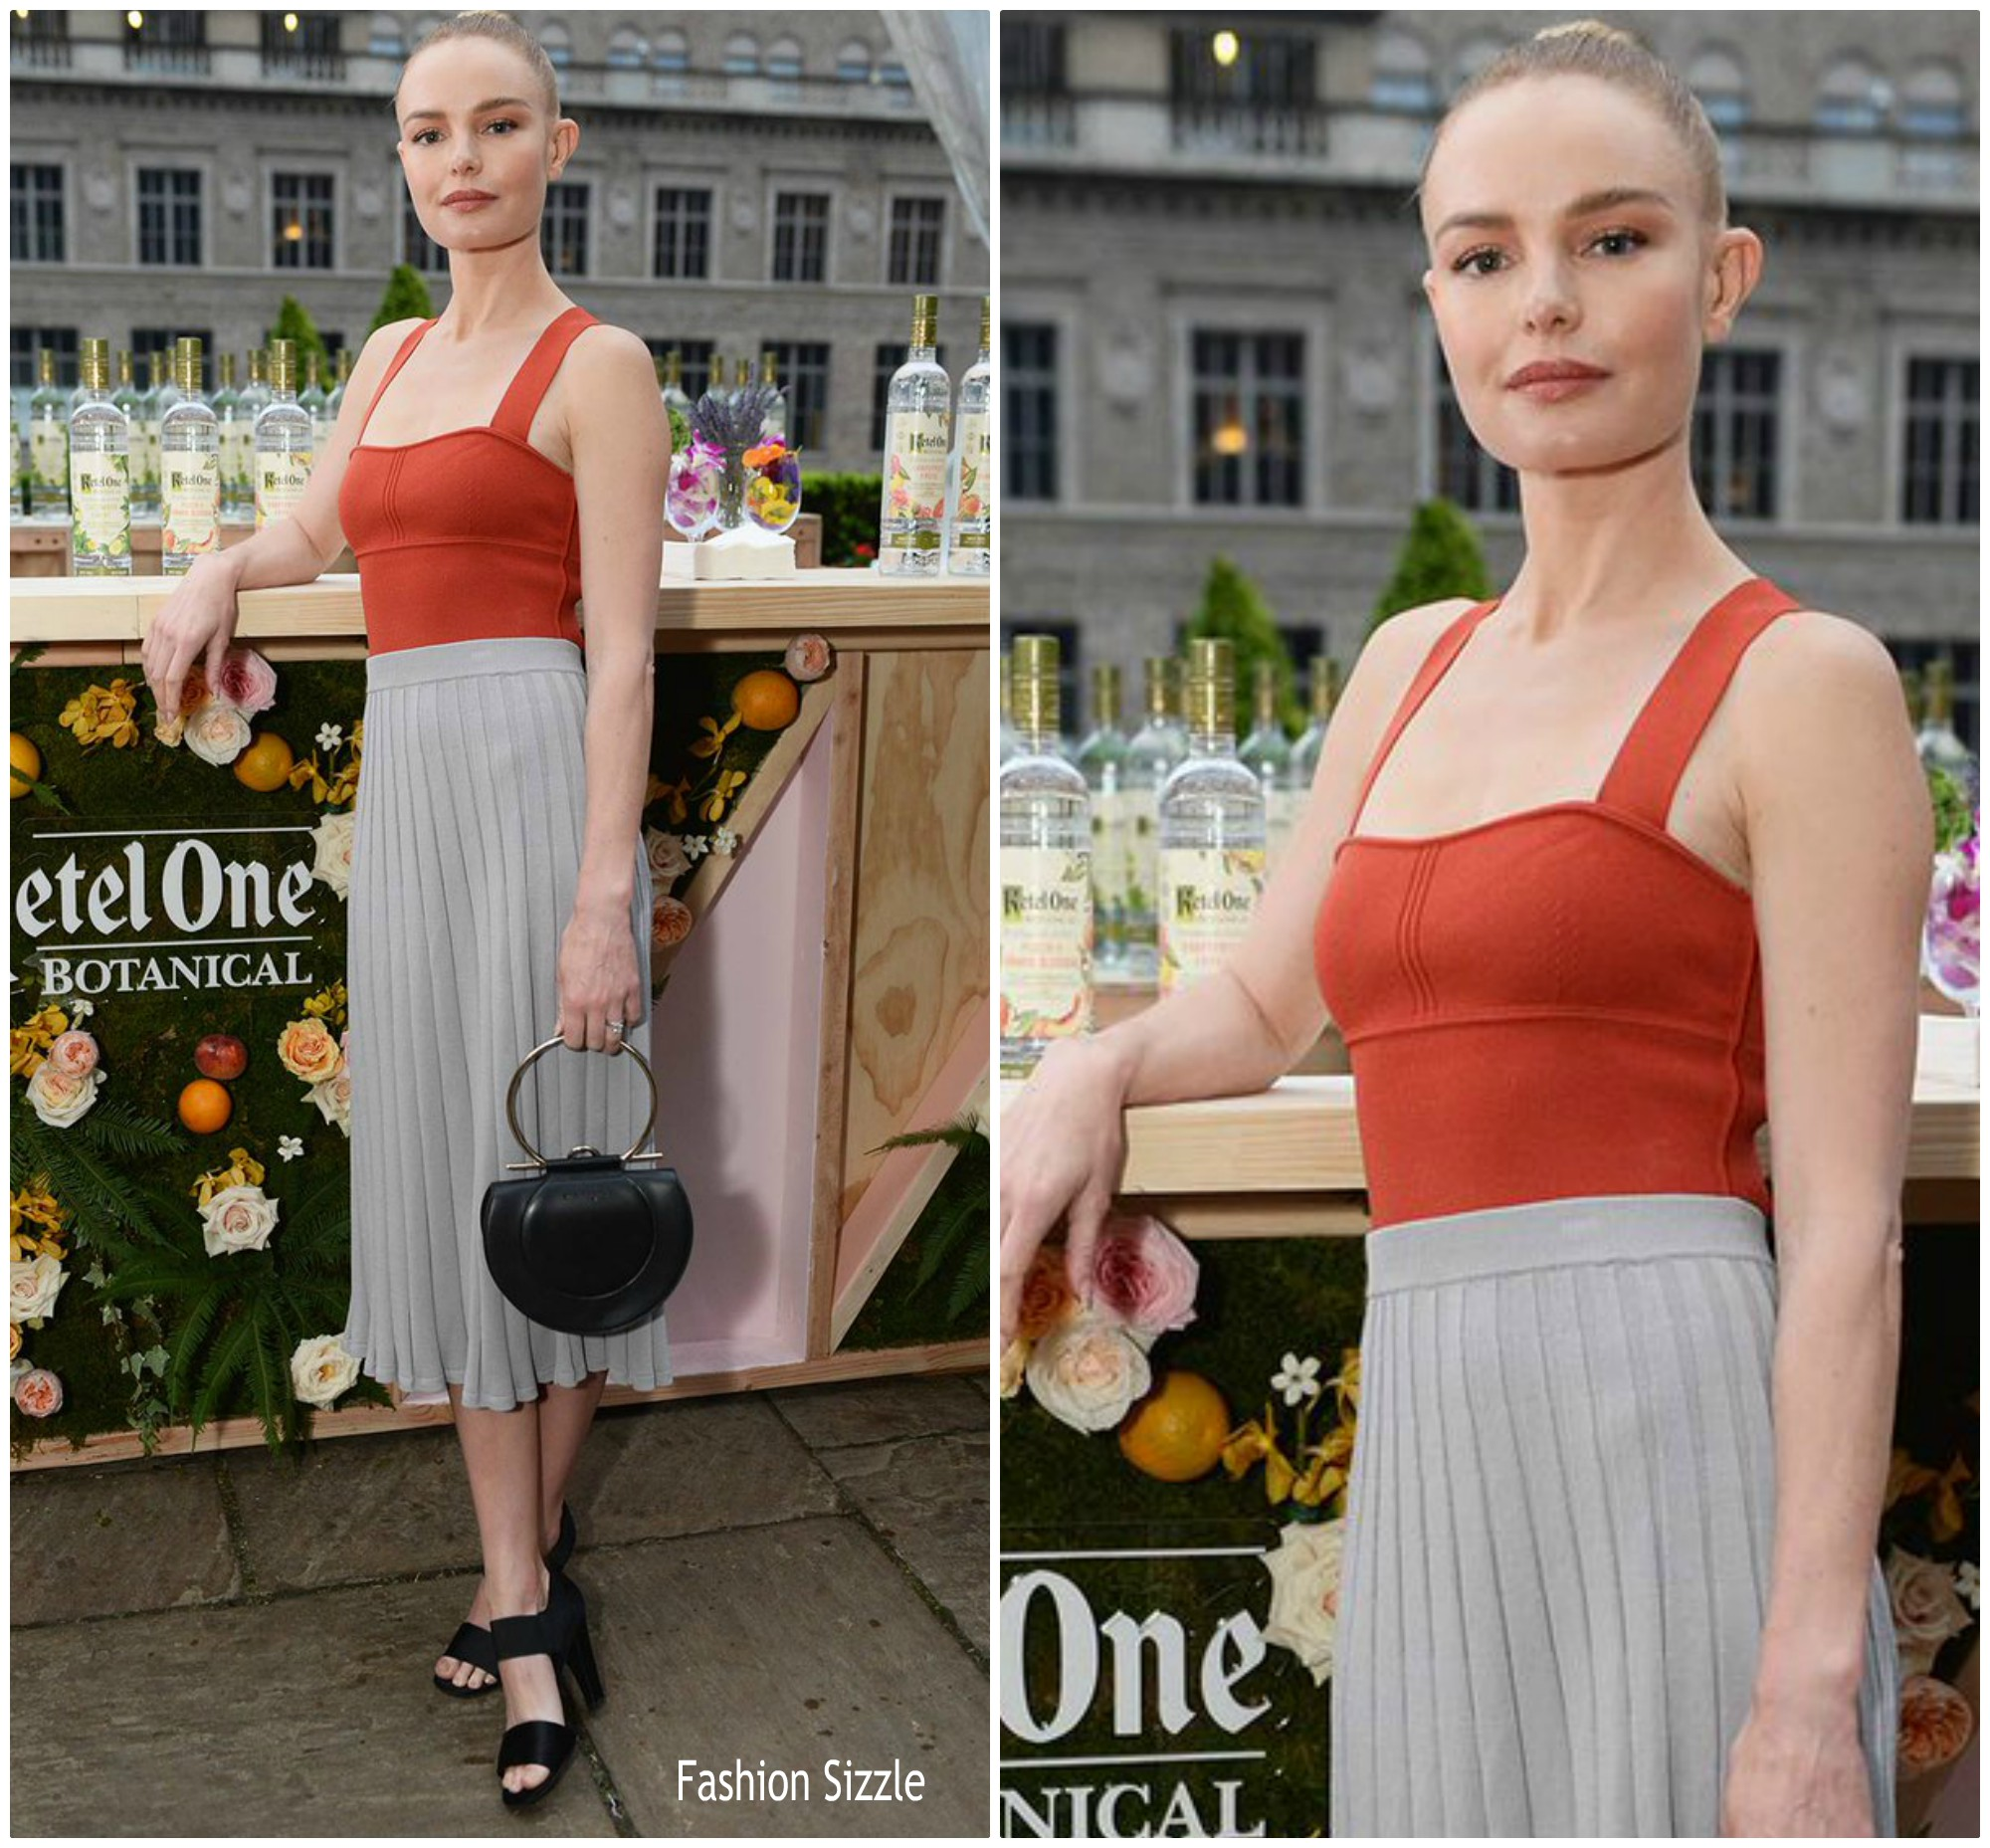 kate-bosworth-in-jason-wu-ketel-one-botanical-launch-celebration